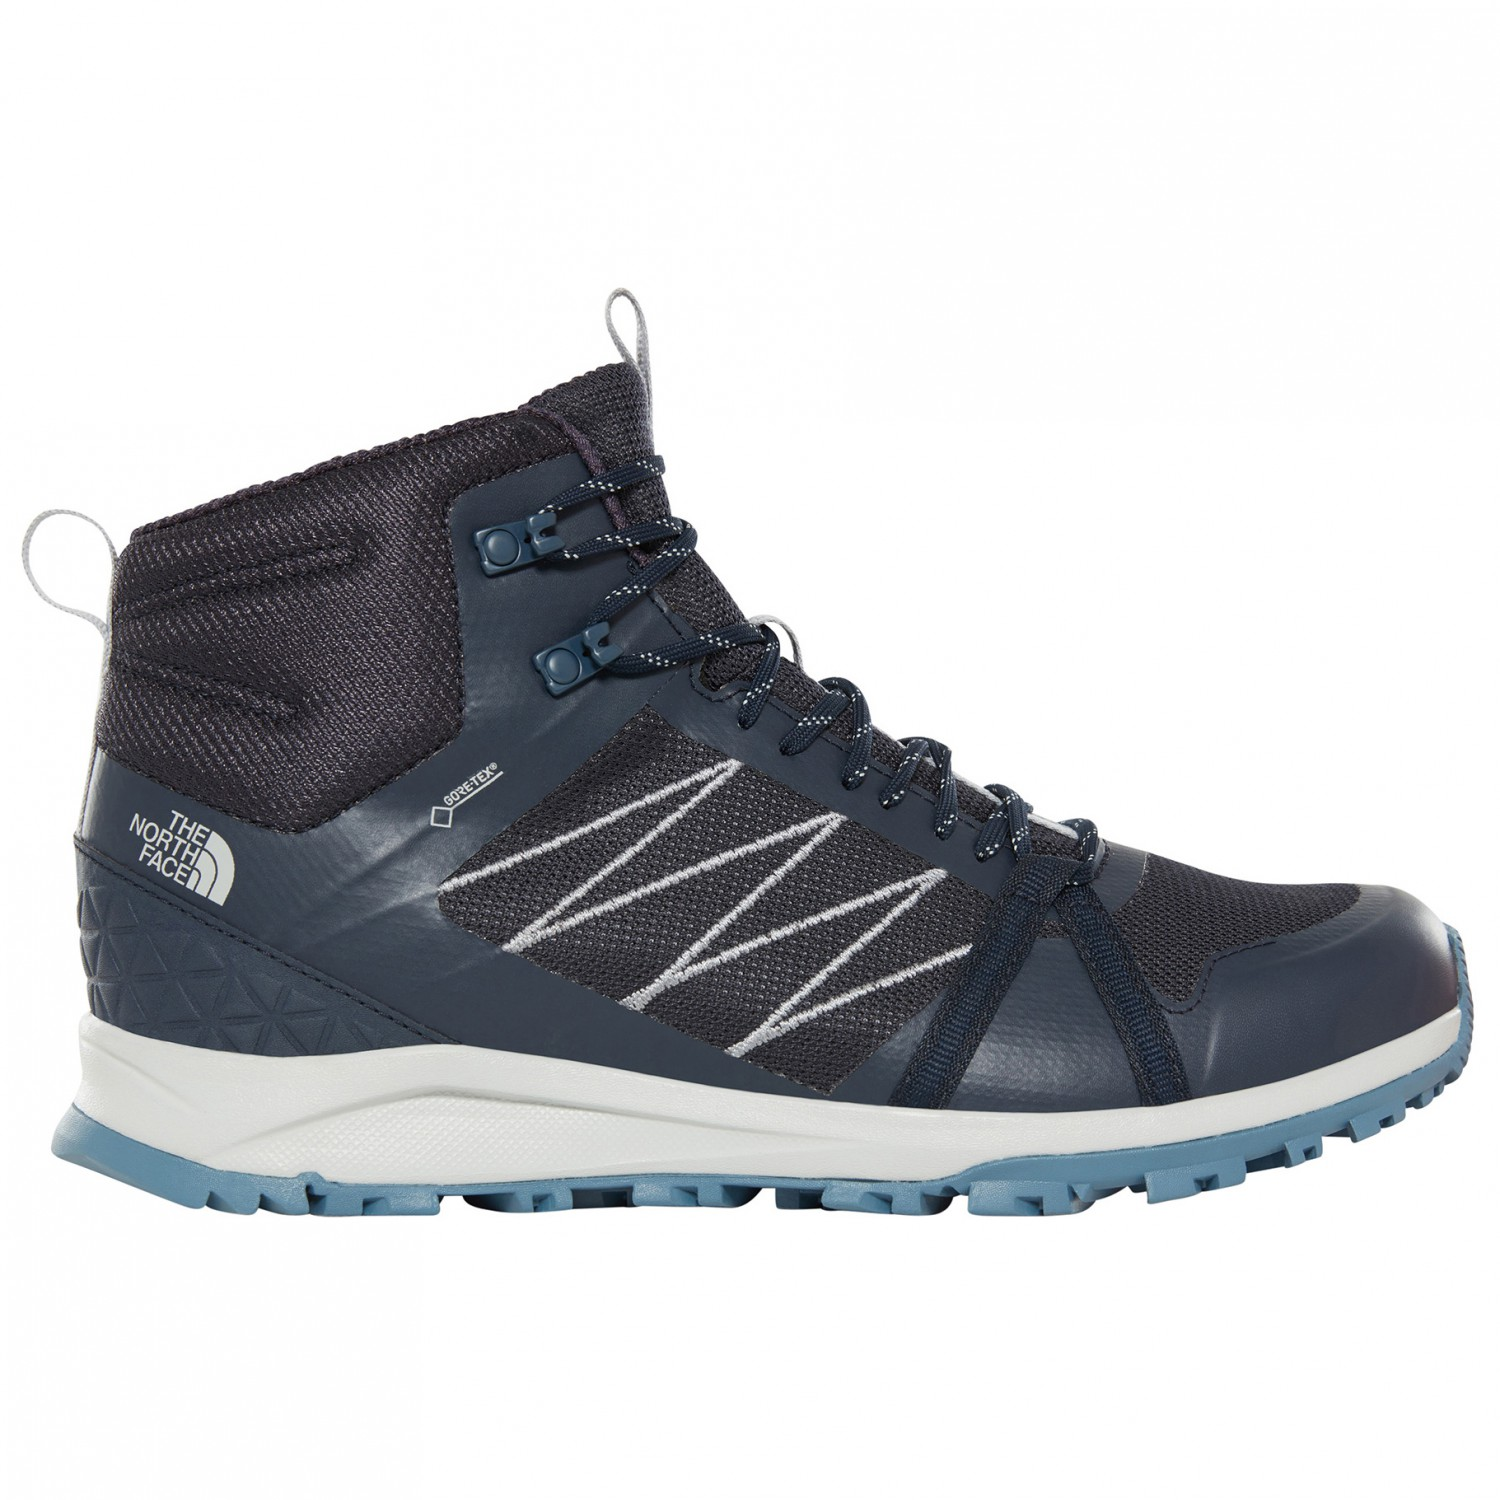 dobrze out x przytulnie świeże aliexpress The North Face - Litewave Fastpack II Mid GTX - Walking boots - TNF Black /  Ebony Grey | 8,5 (US)